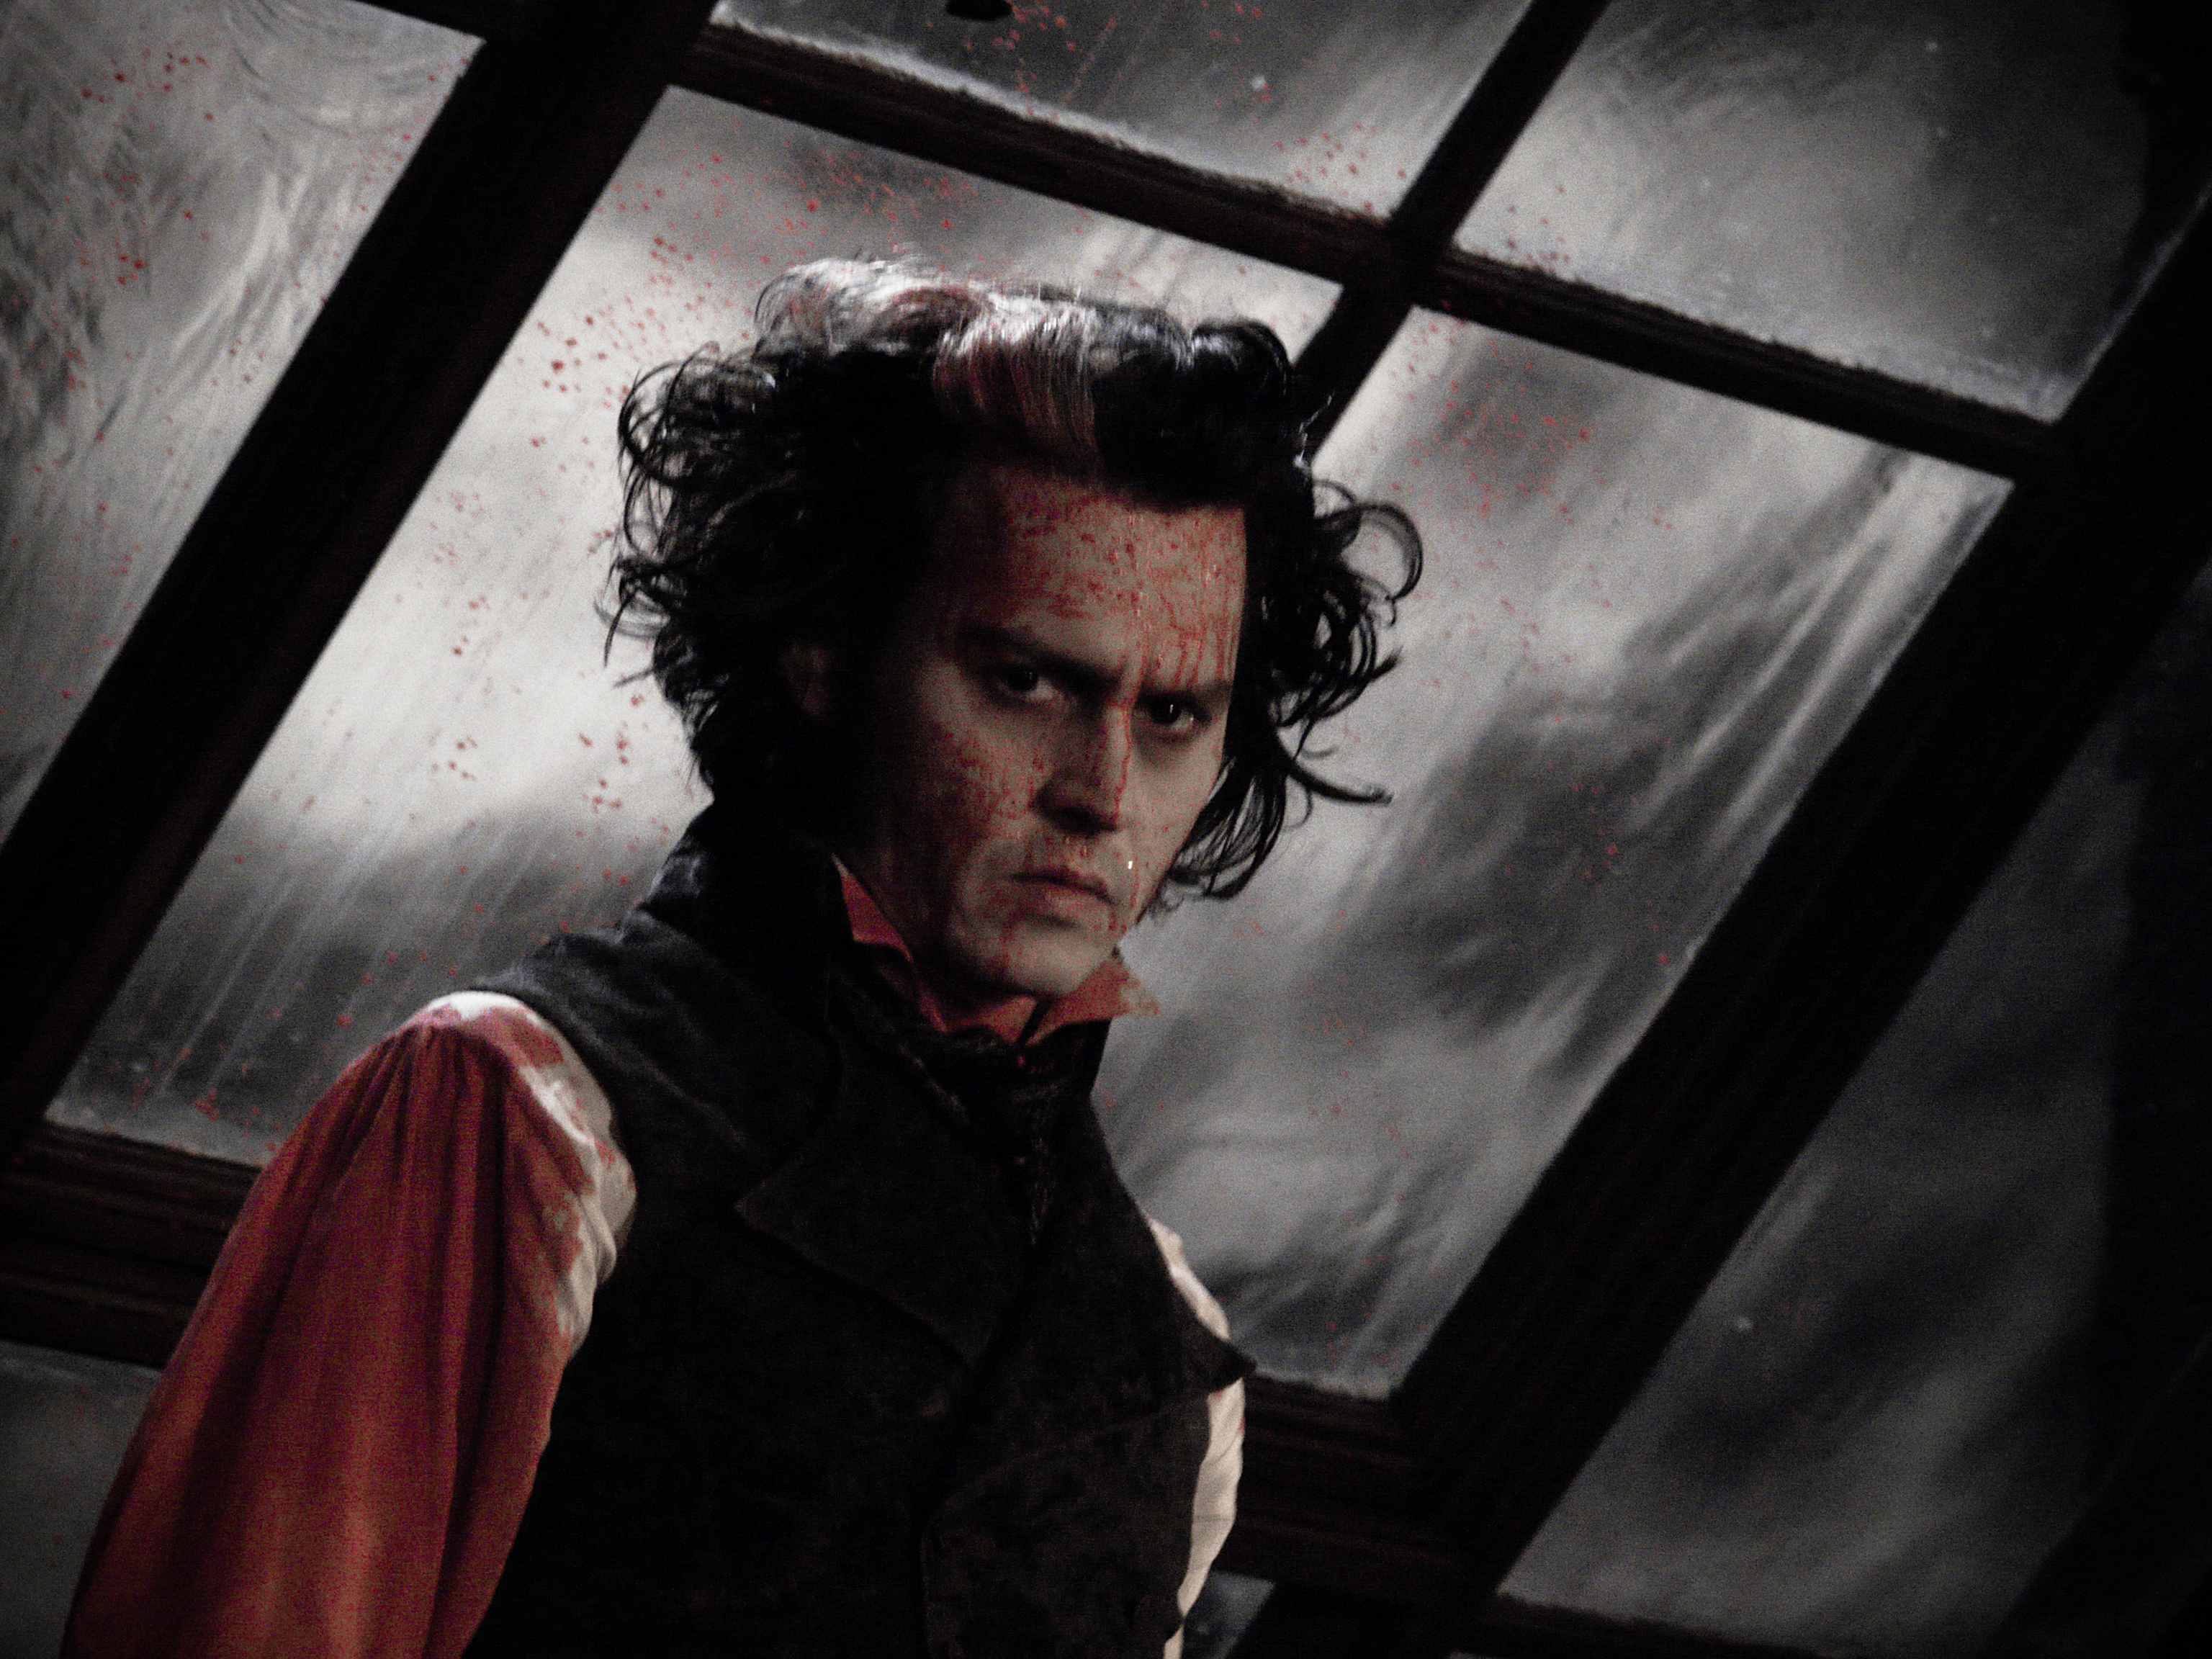 sweeney todd HD Wallpaper